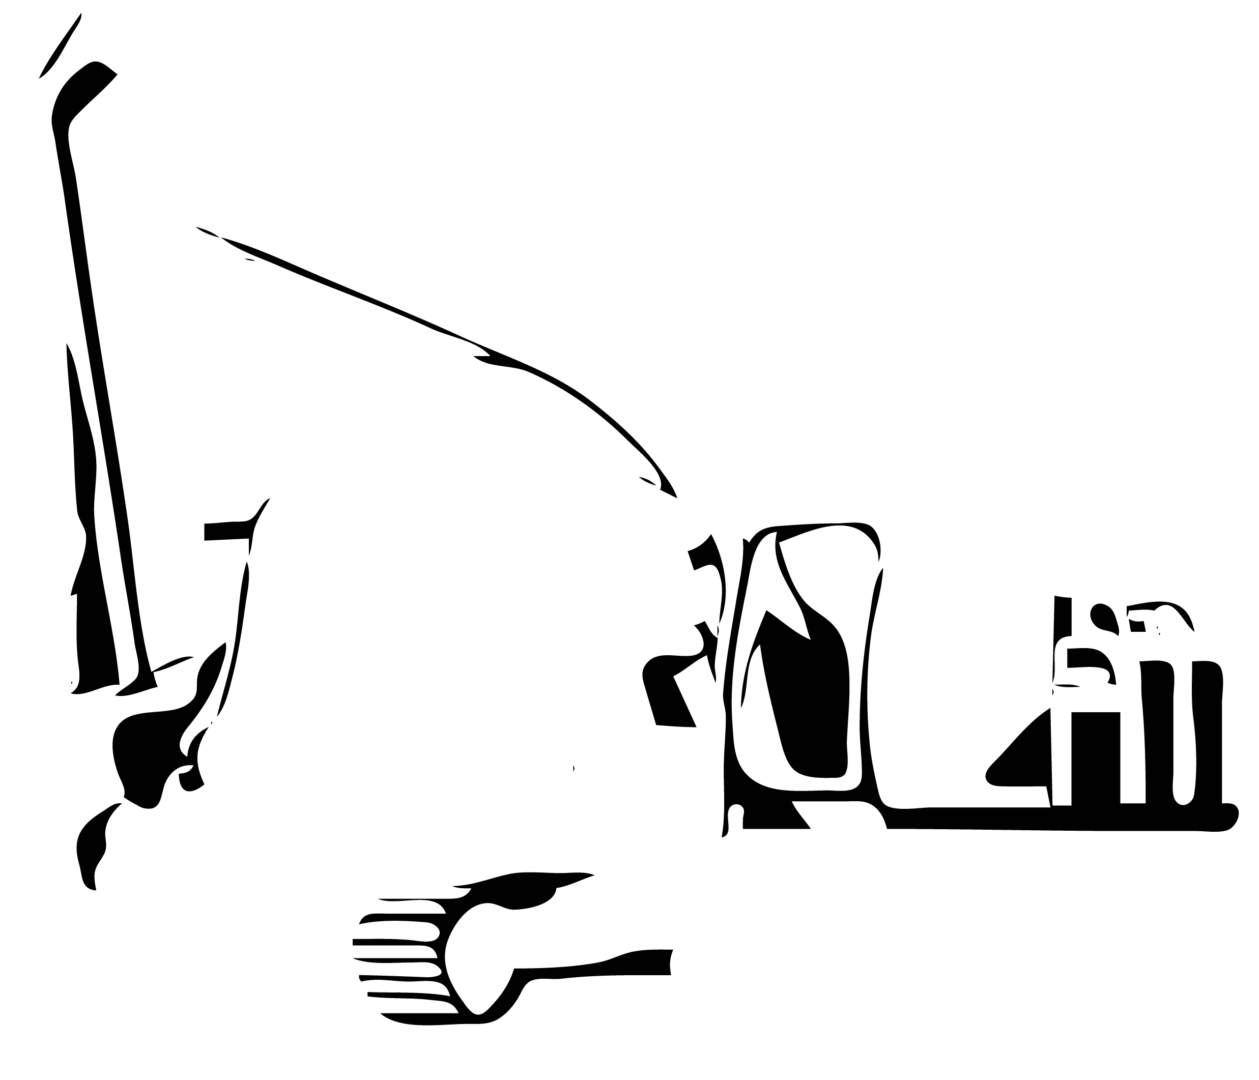 PinClipart.com black and white backhoe 508951 3 - Home